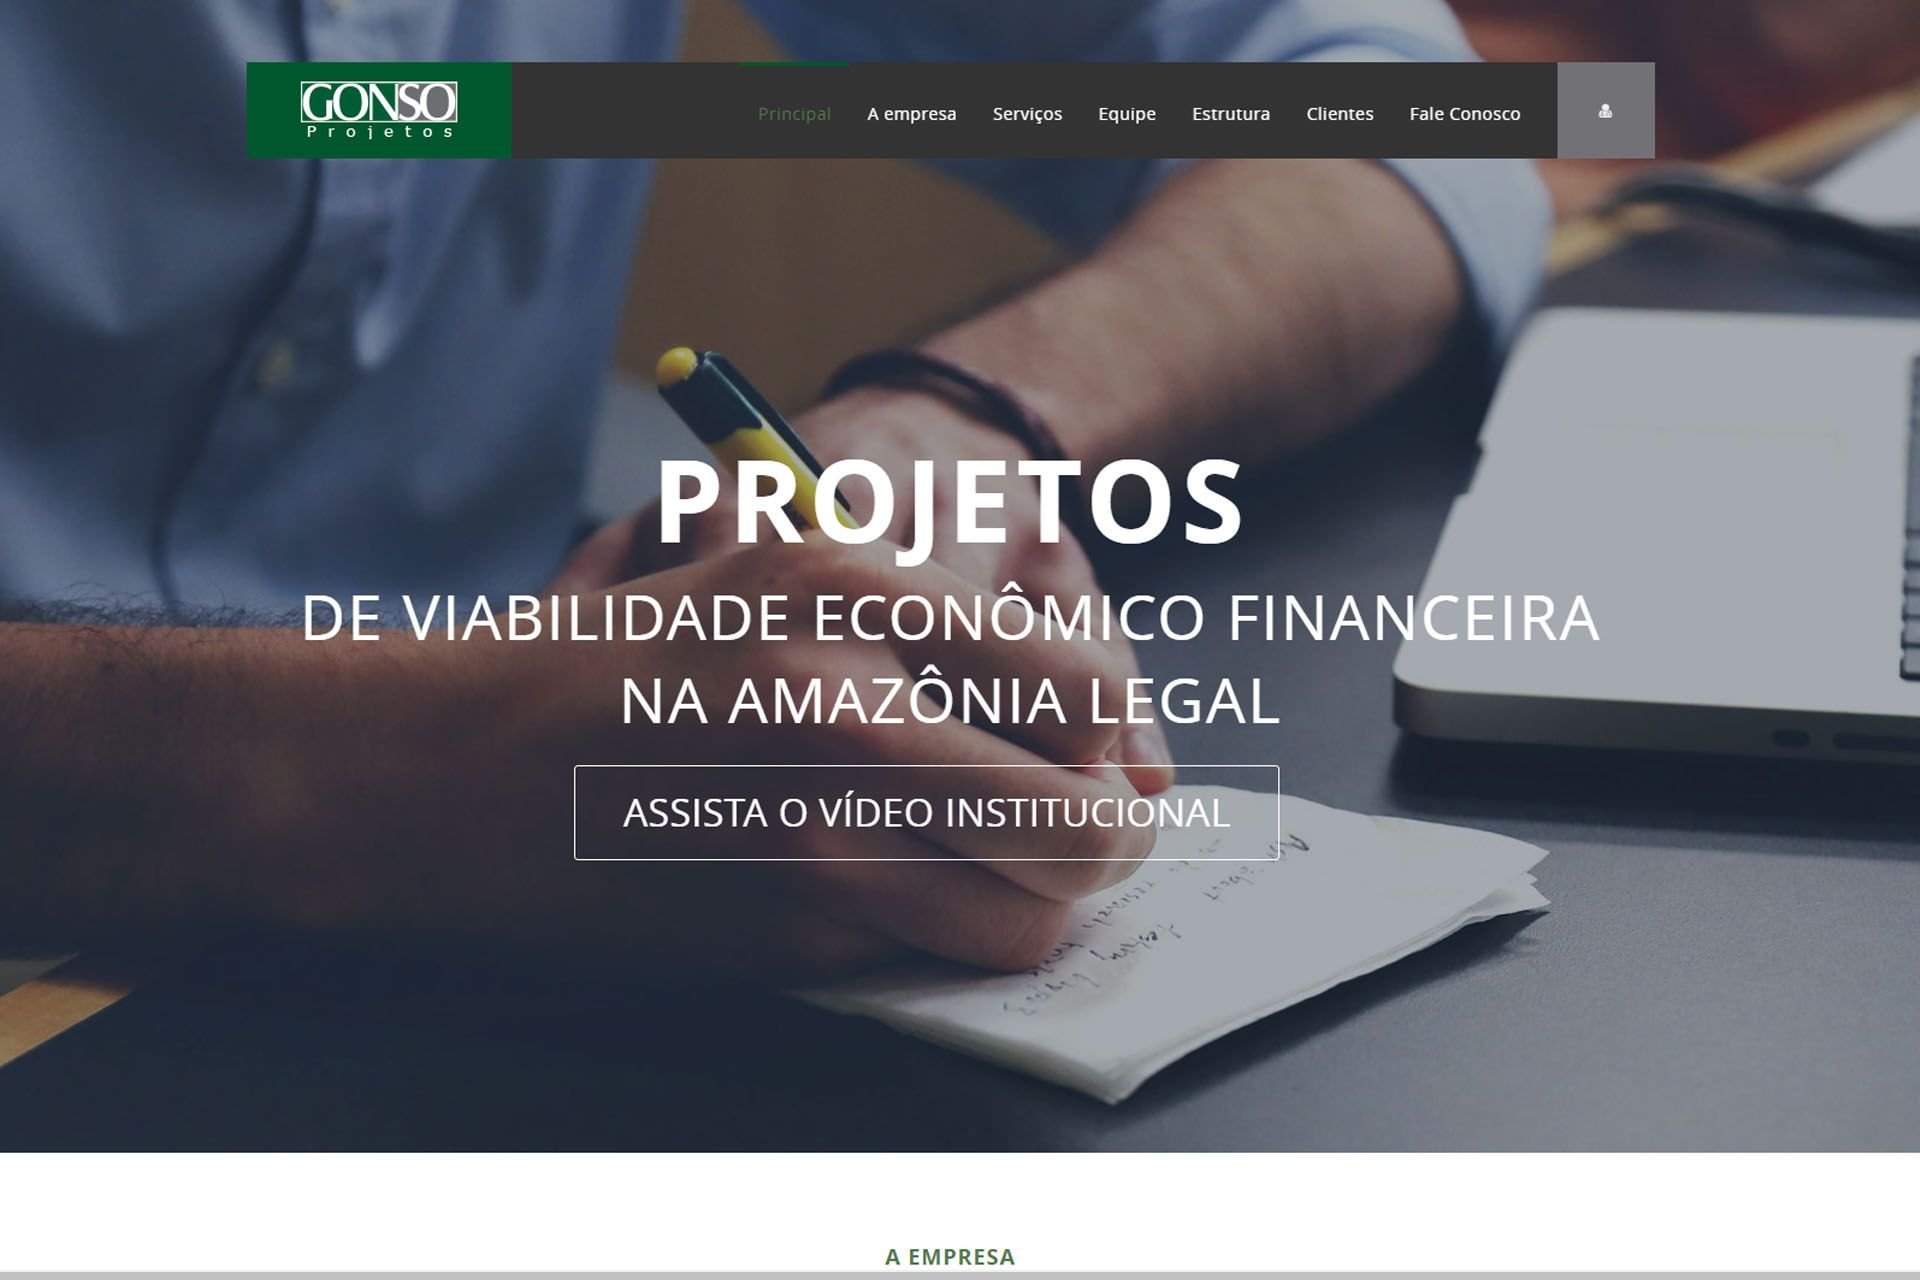 Gonso Projetos